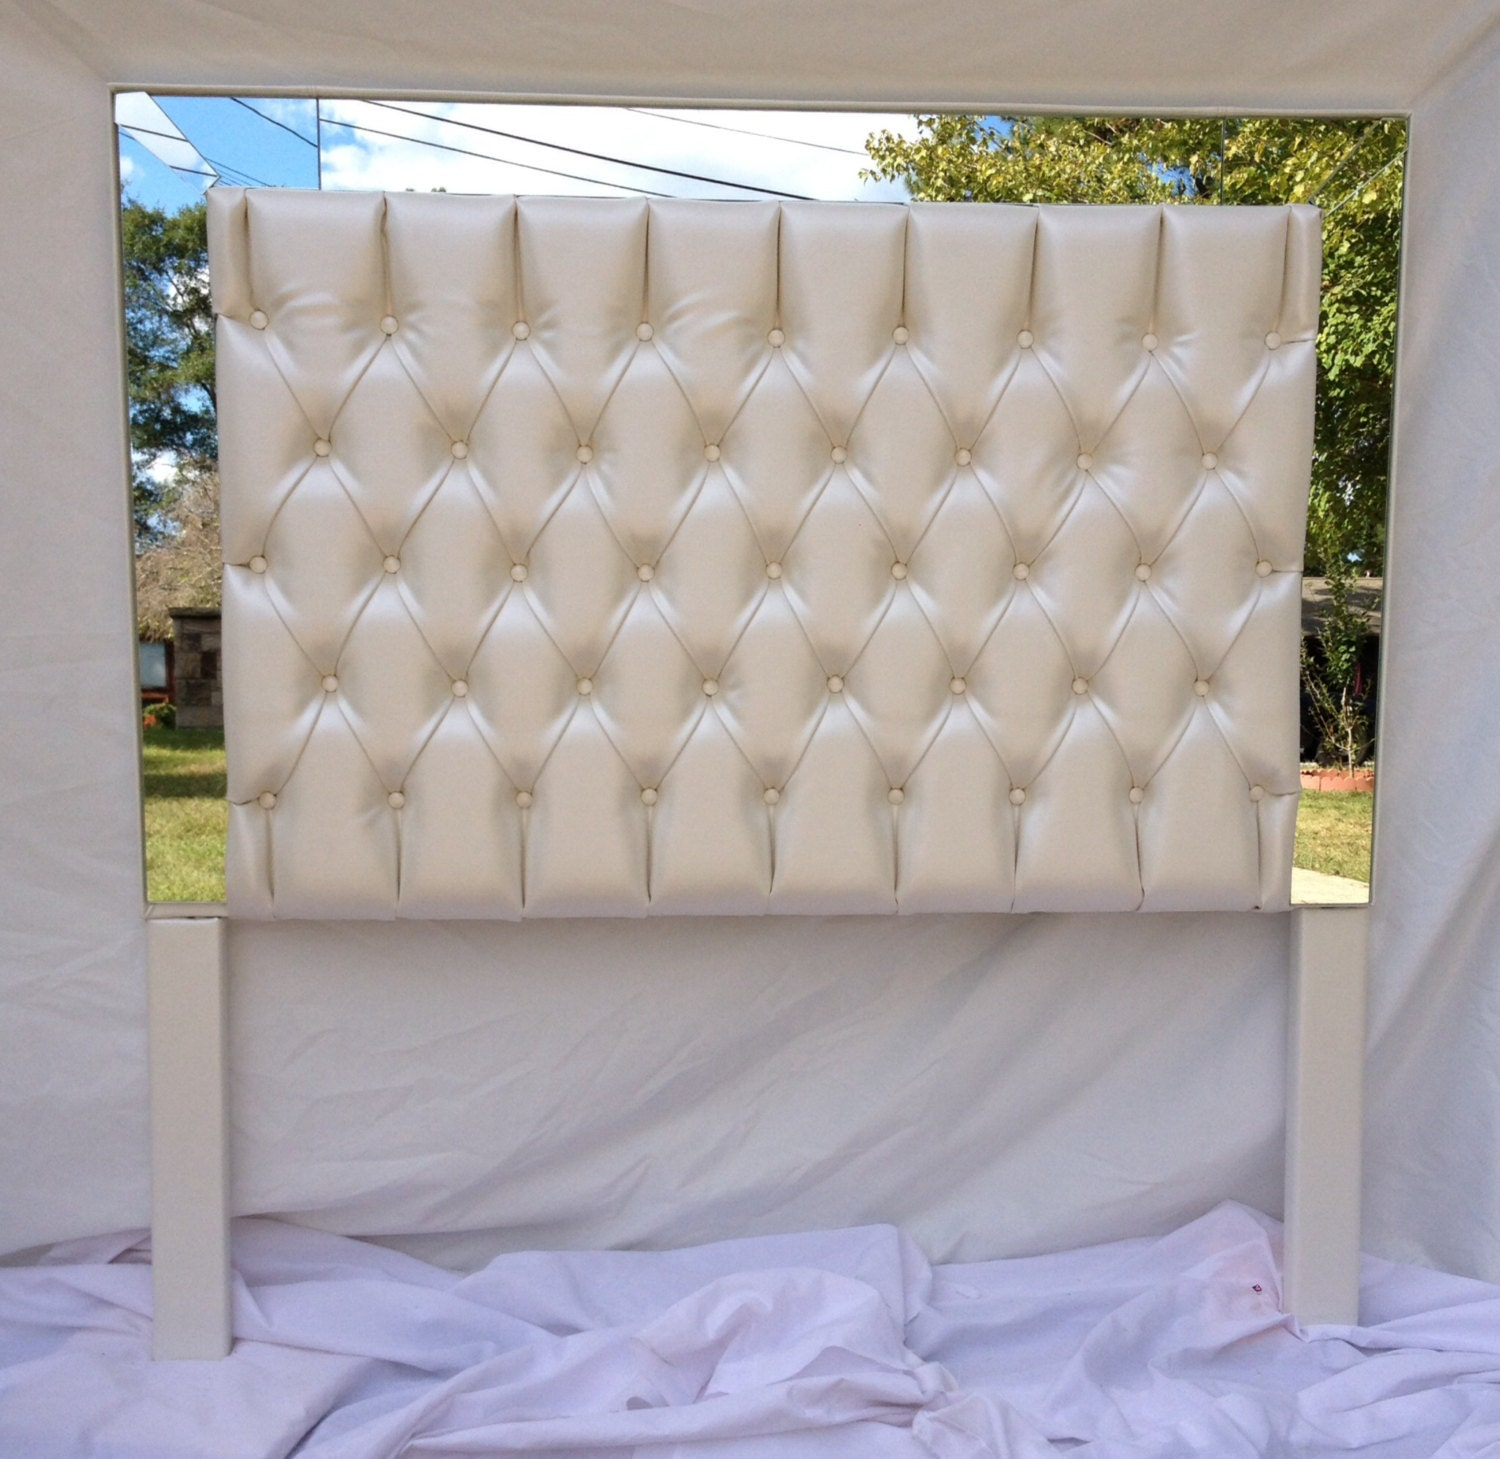 Leather tufted headboard